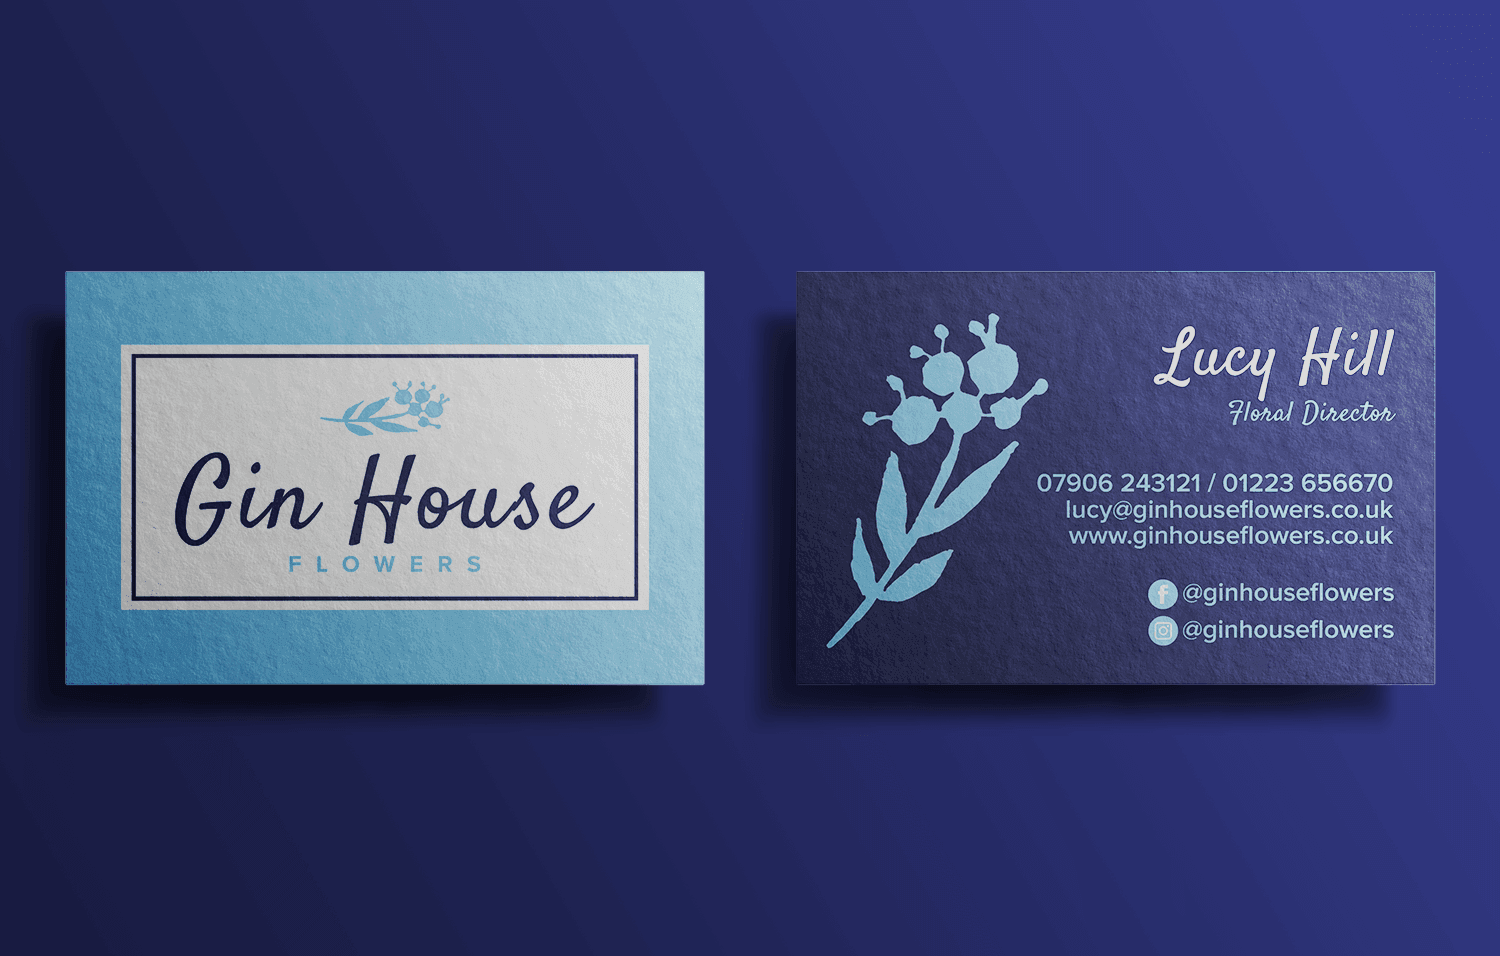 Gin House Flowers logo business cards